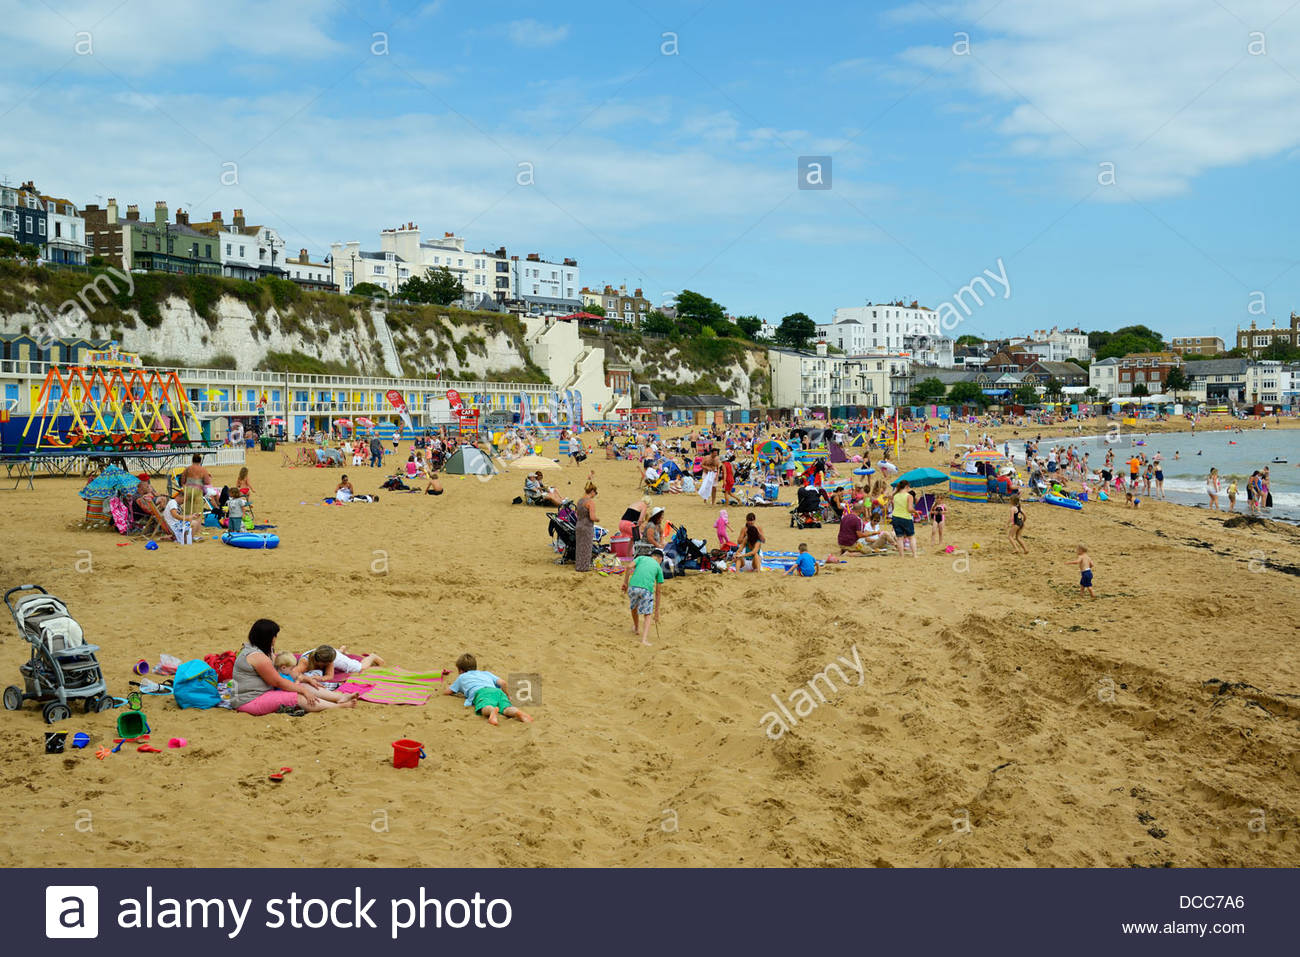 Holiday makers on the beach, Viking Bay, Broadstairs, Kent, England UK Stock Photo